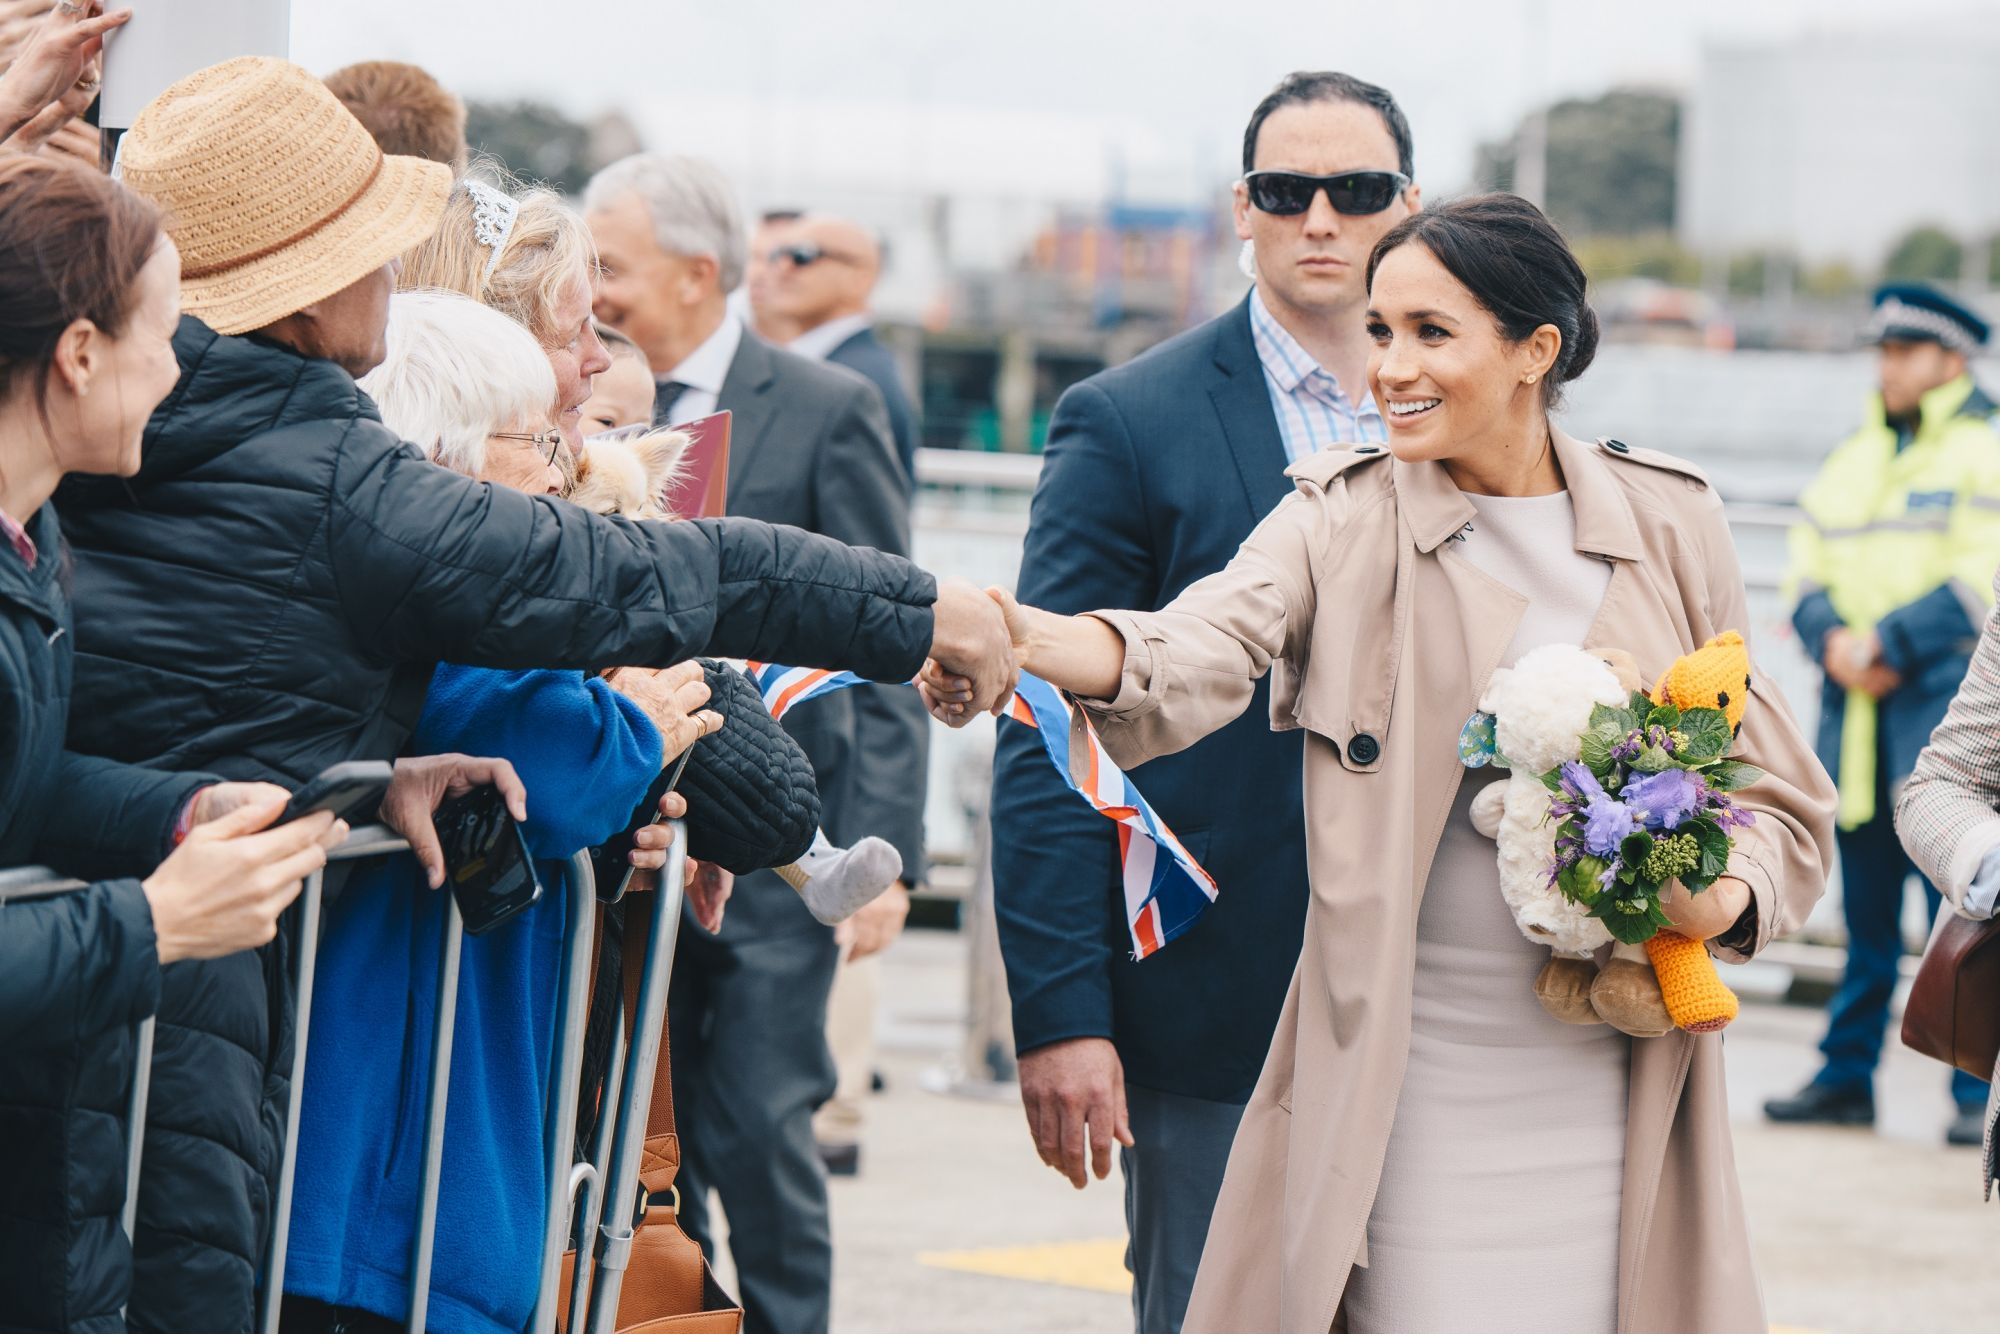 Meghan Markle vs Kate Middleton: Whose Style is More Iconic?